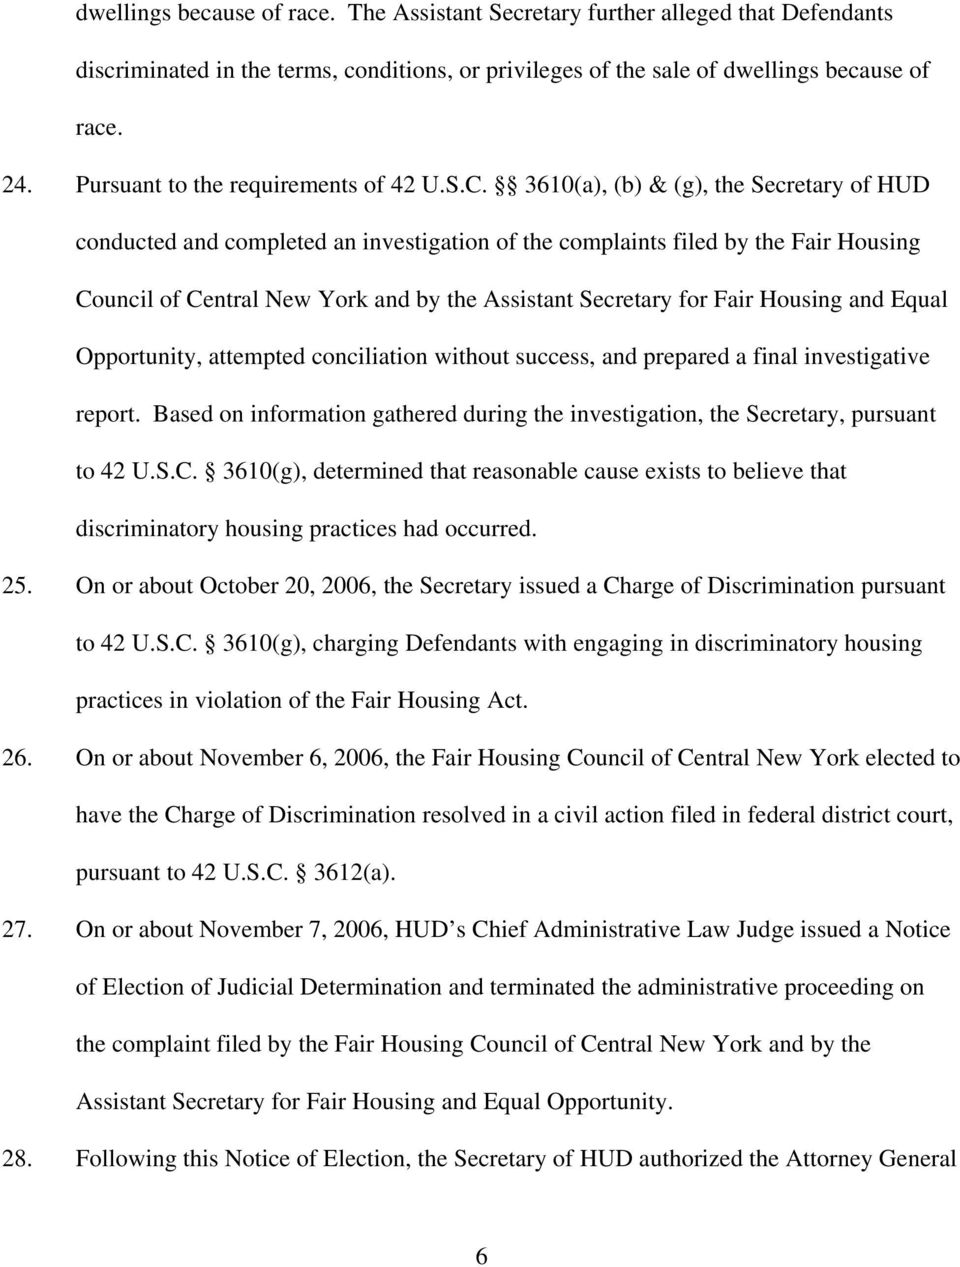 3610(a), (b) & (g), the Secretary of HUD conducted and completed an investigation of the complaints filed by the Fair Housing Council of Central New York and by the Assistant Secretary for Fair